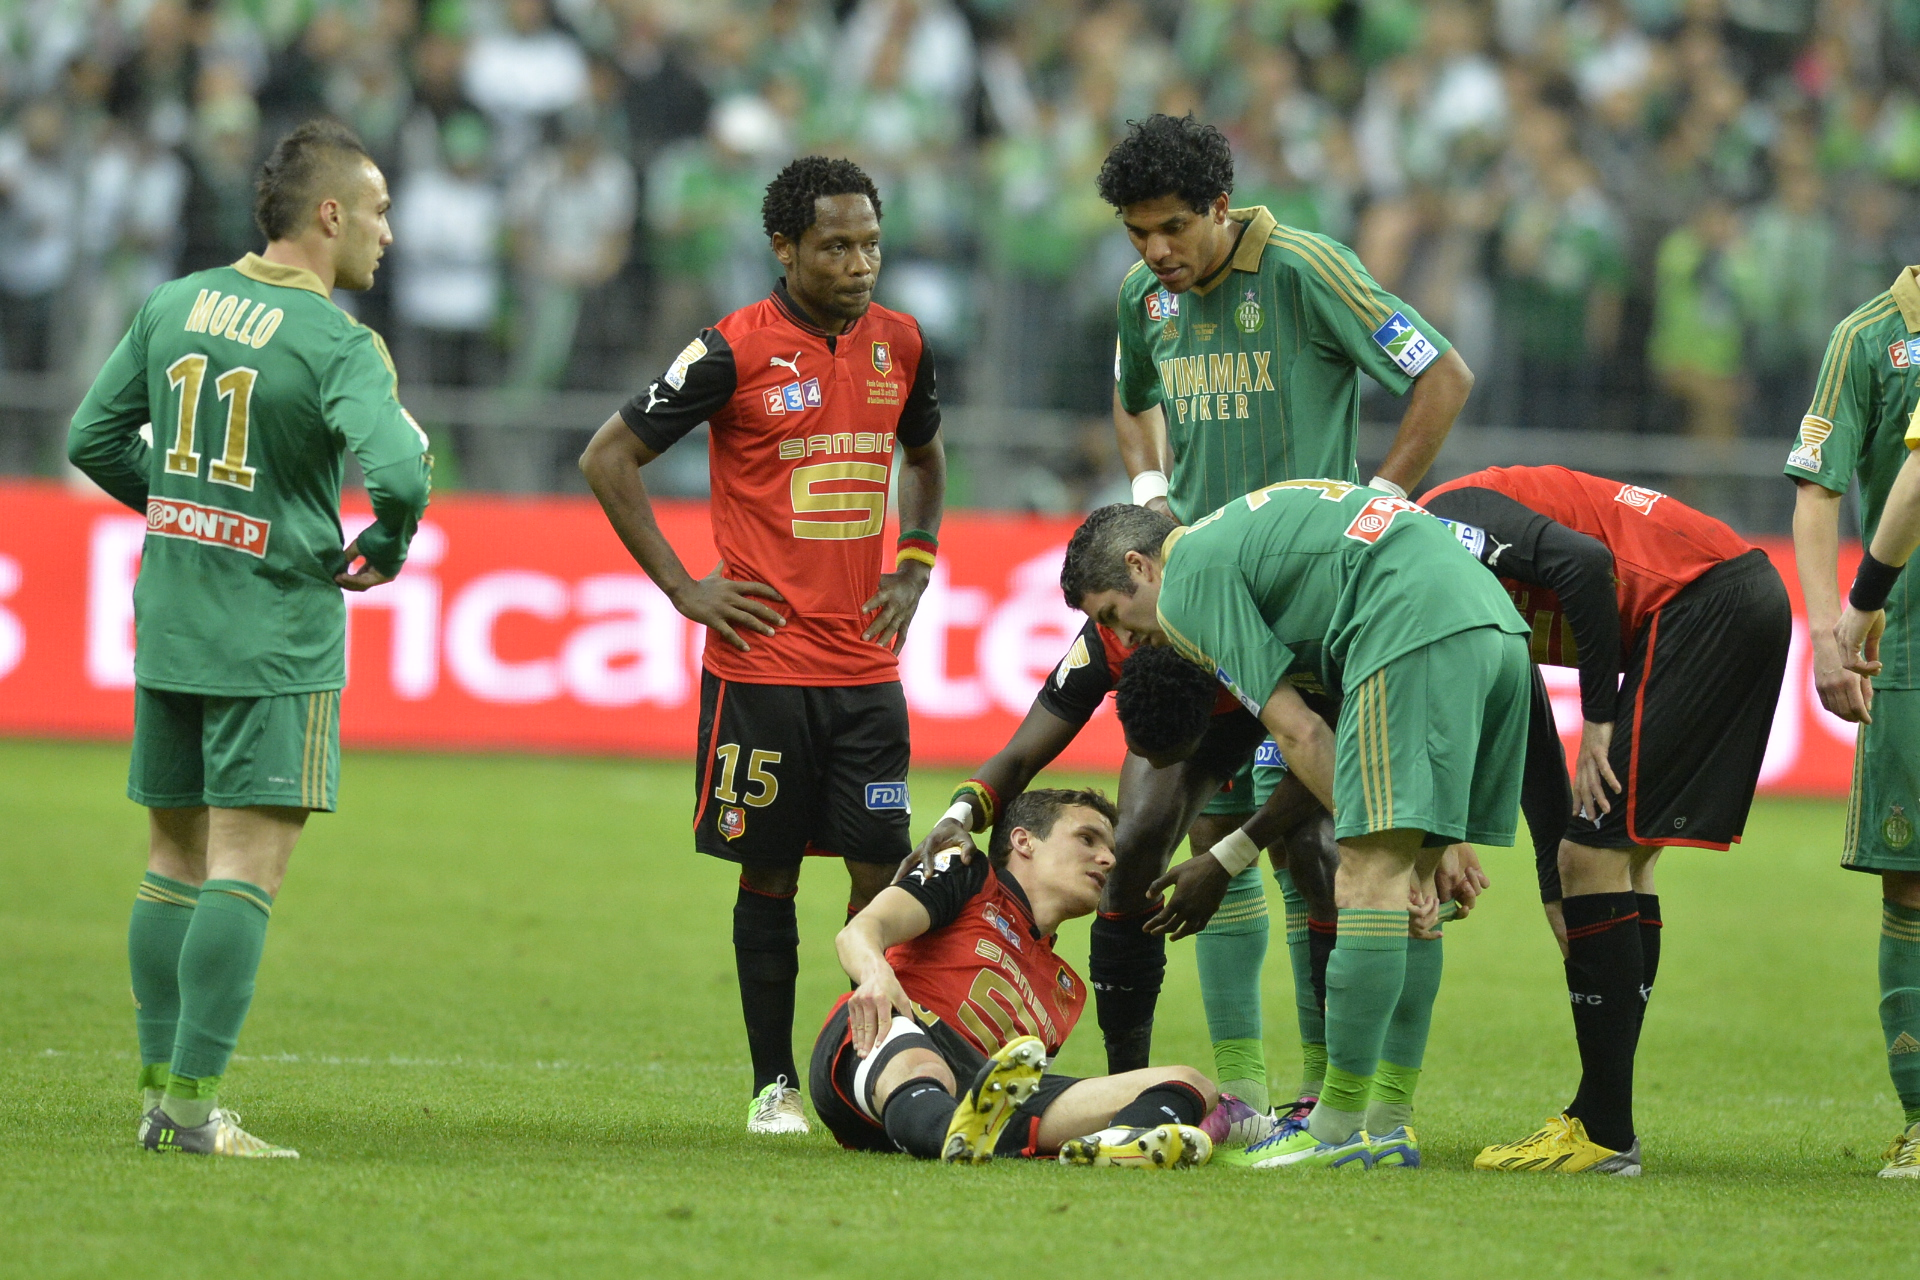 Match ASSE Rennes en direct streaming live